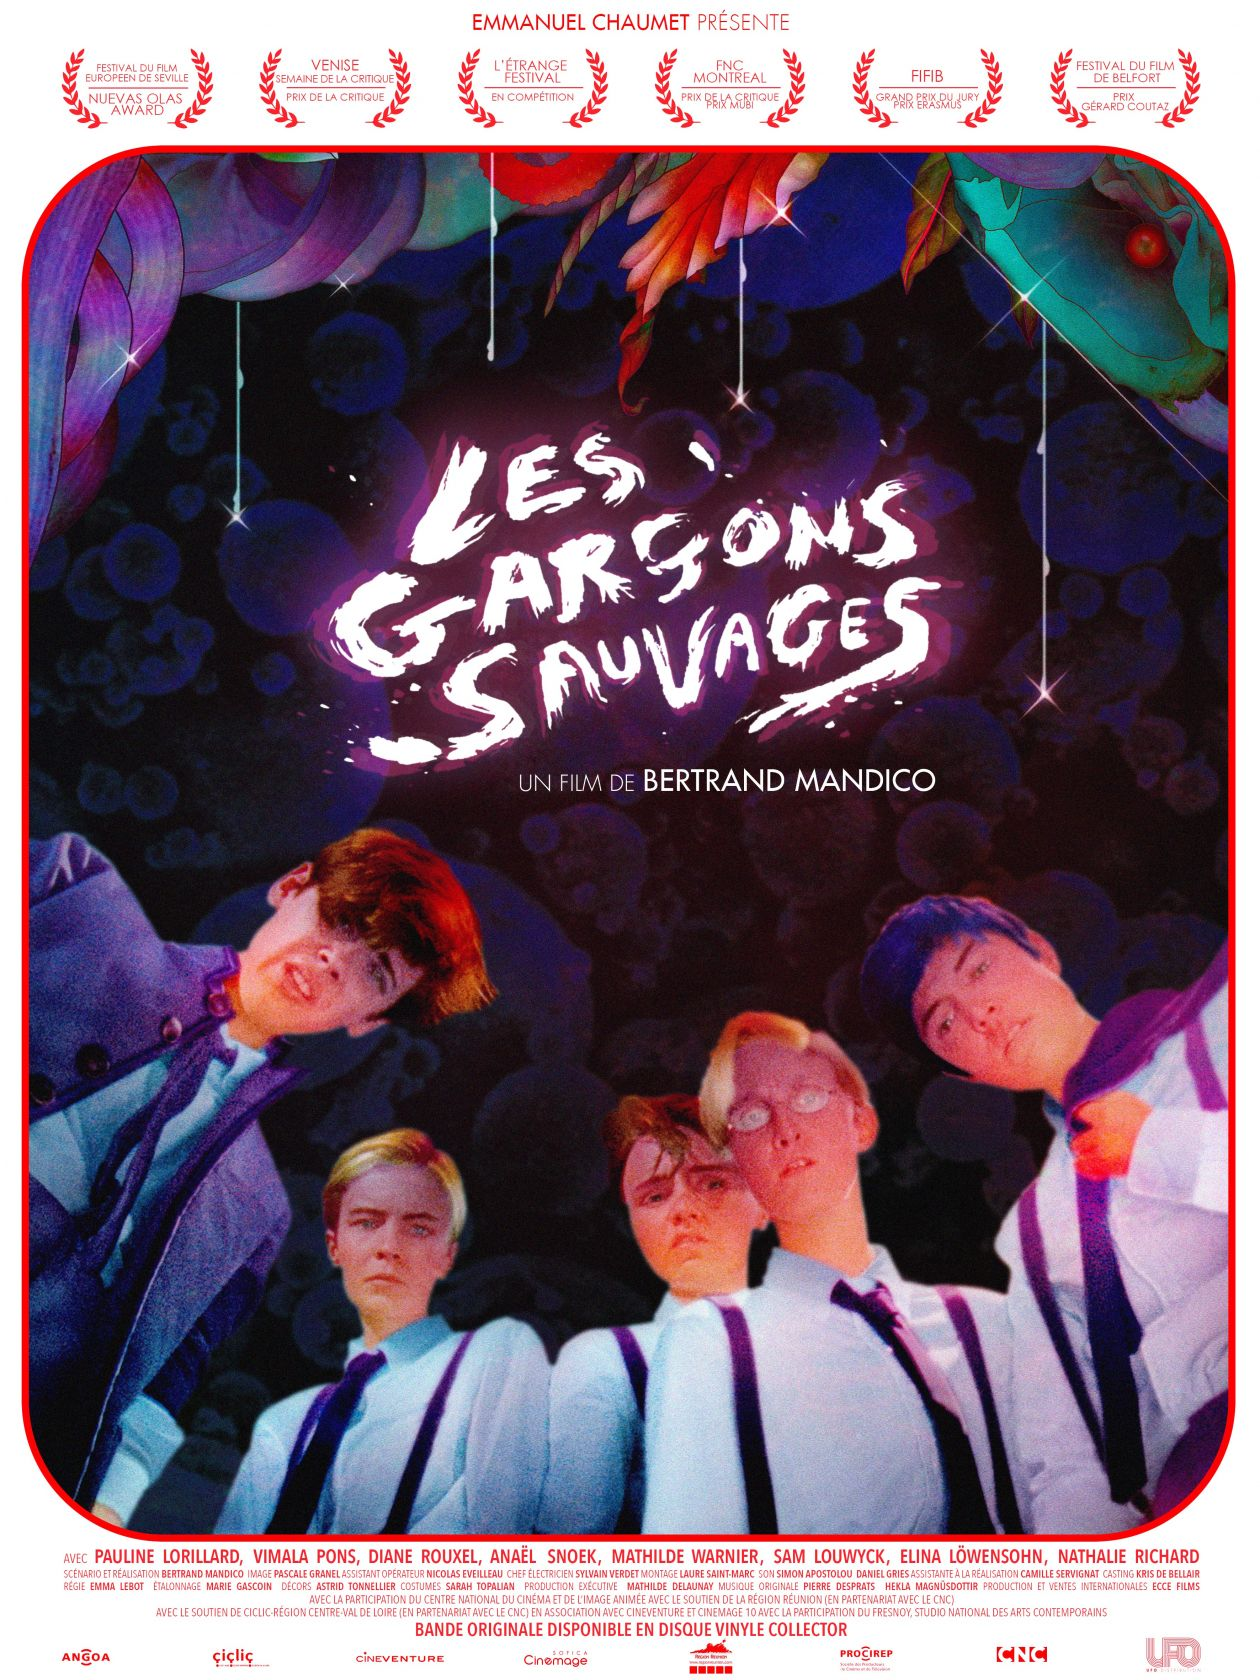 Mathilde Warnier French actress / Les Garçons Sauvages - The Wild Boys - Bertrand Mandico Movie Poster Afiche film